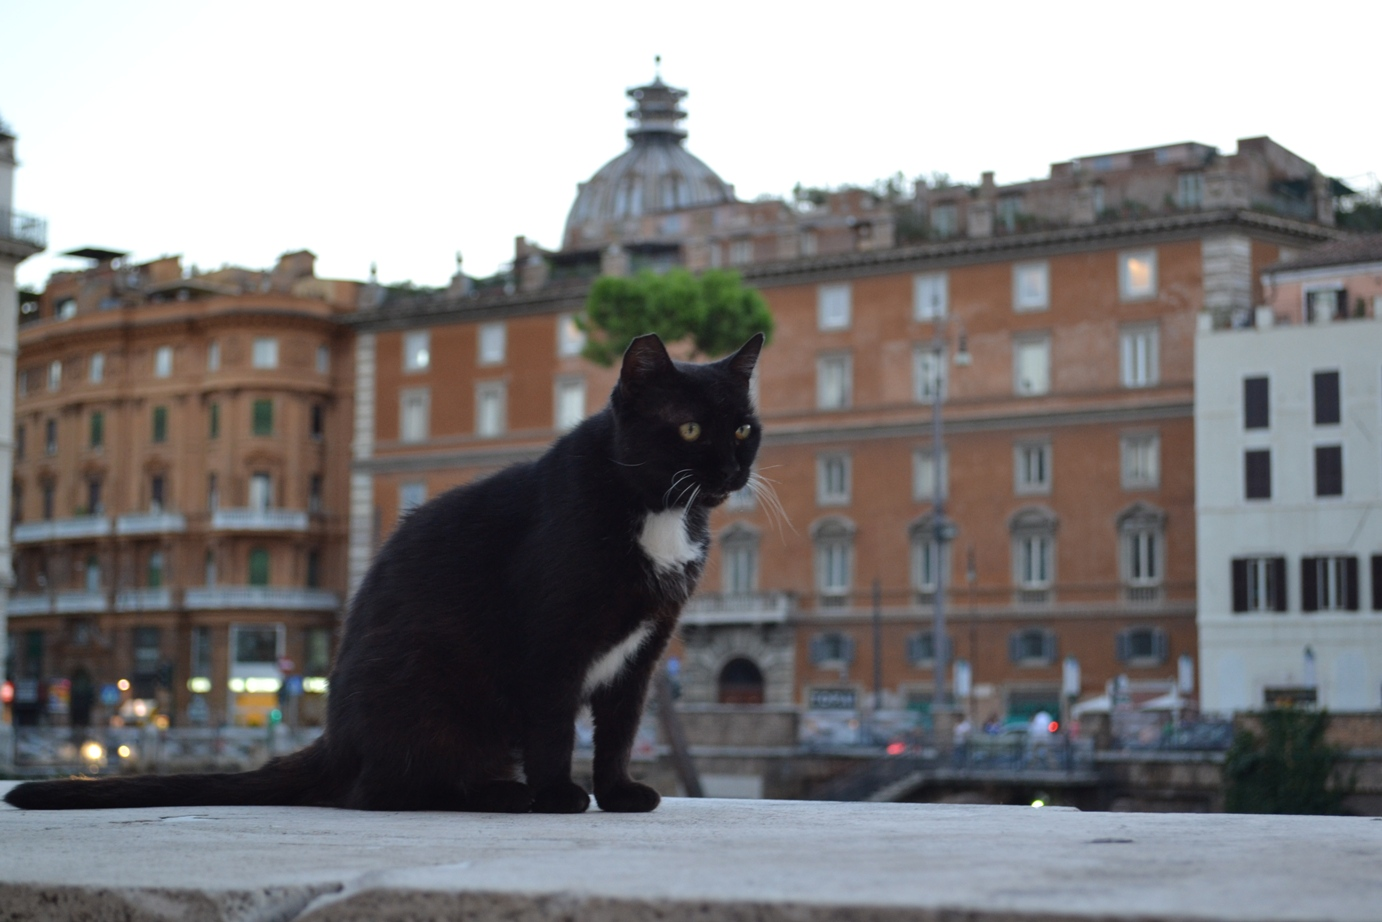 A black feline soft paw chiling in the evening at Largo Argentina